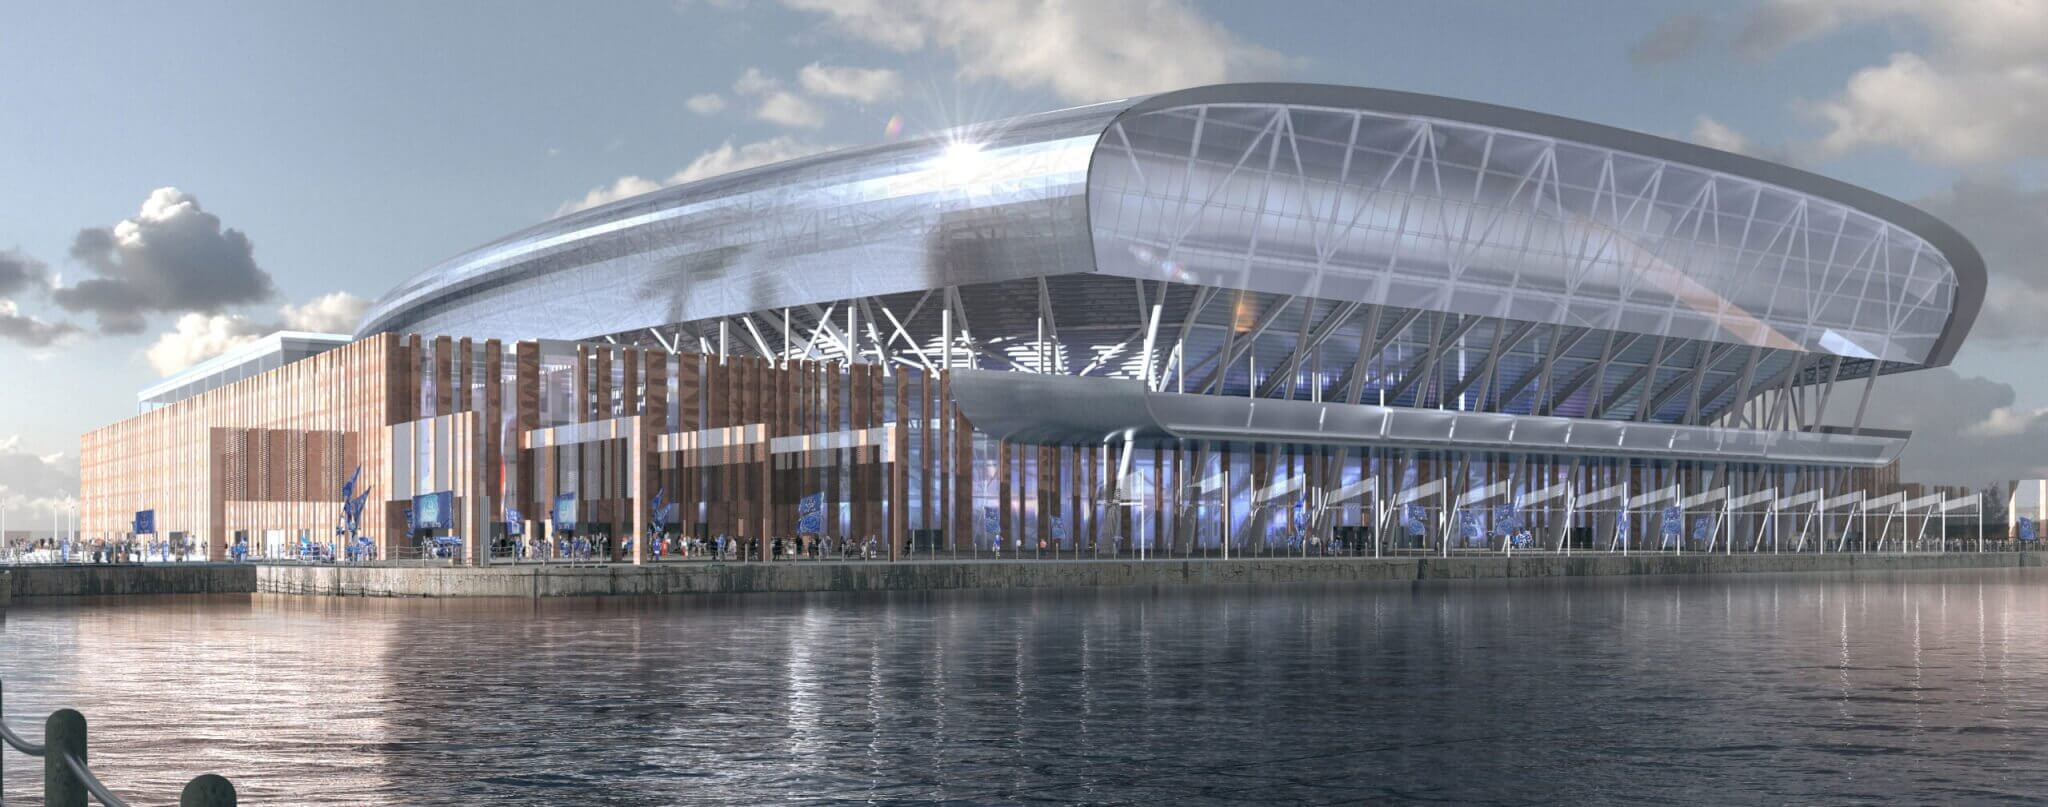 Everton FC new stadium